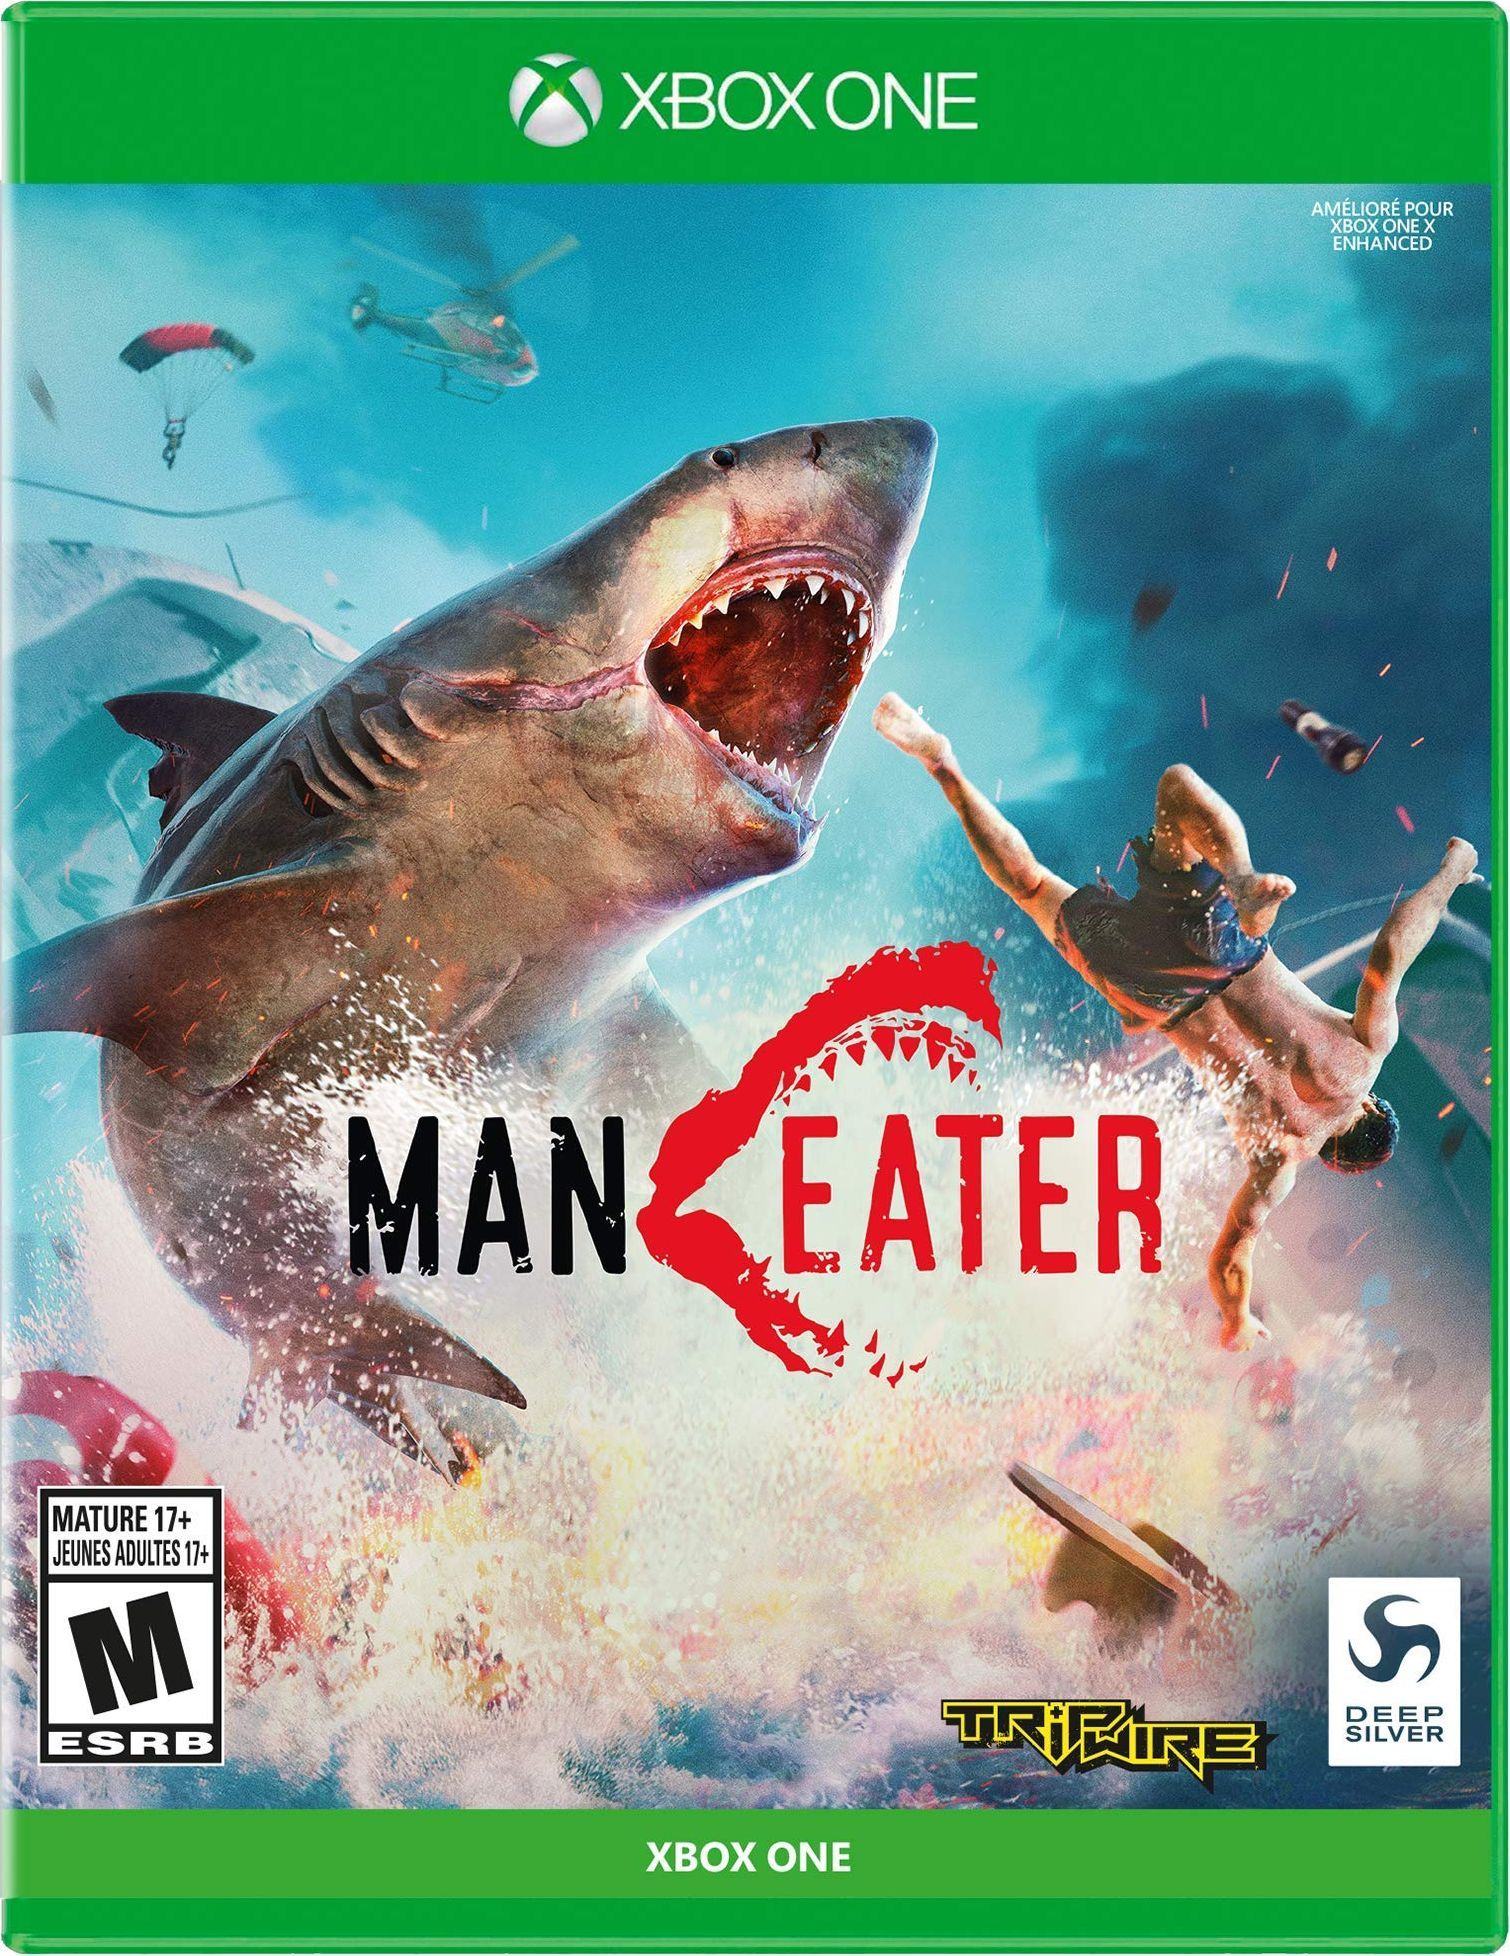 Maneater in 2020 Xbox one, Xbox one games, Xbox